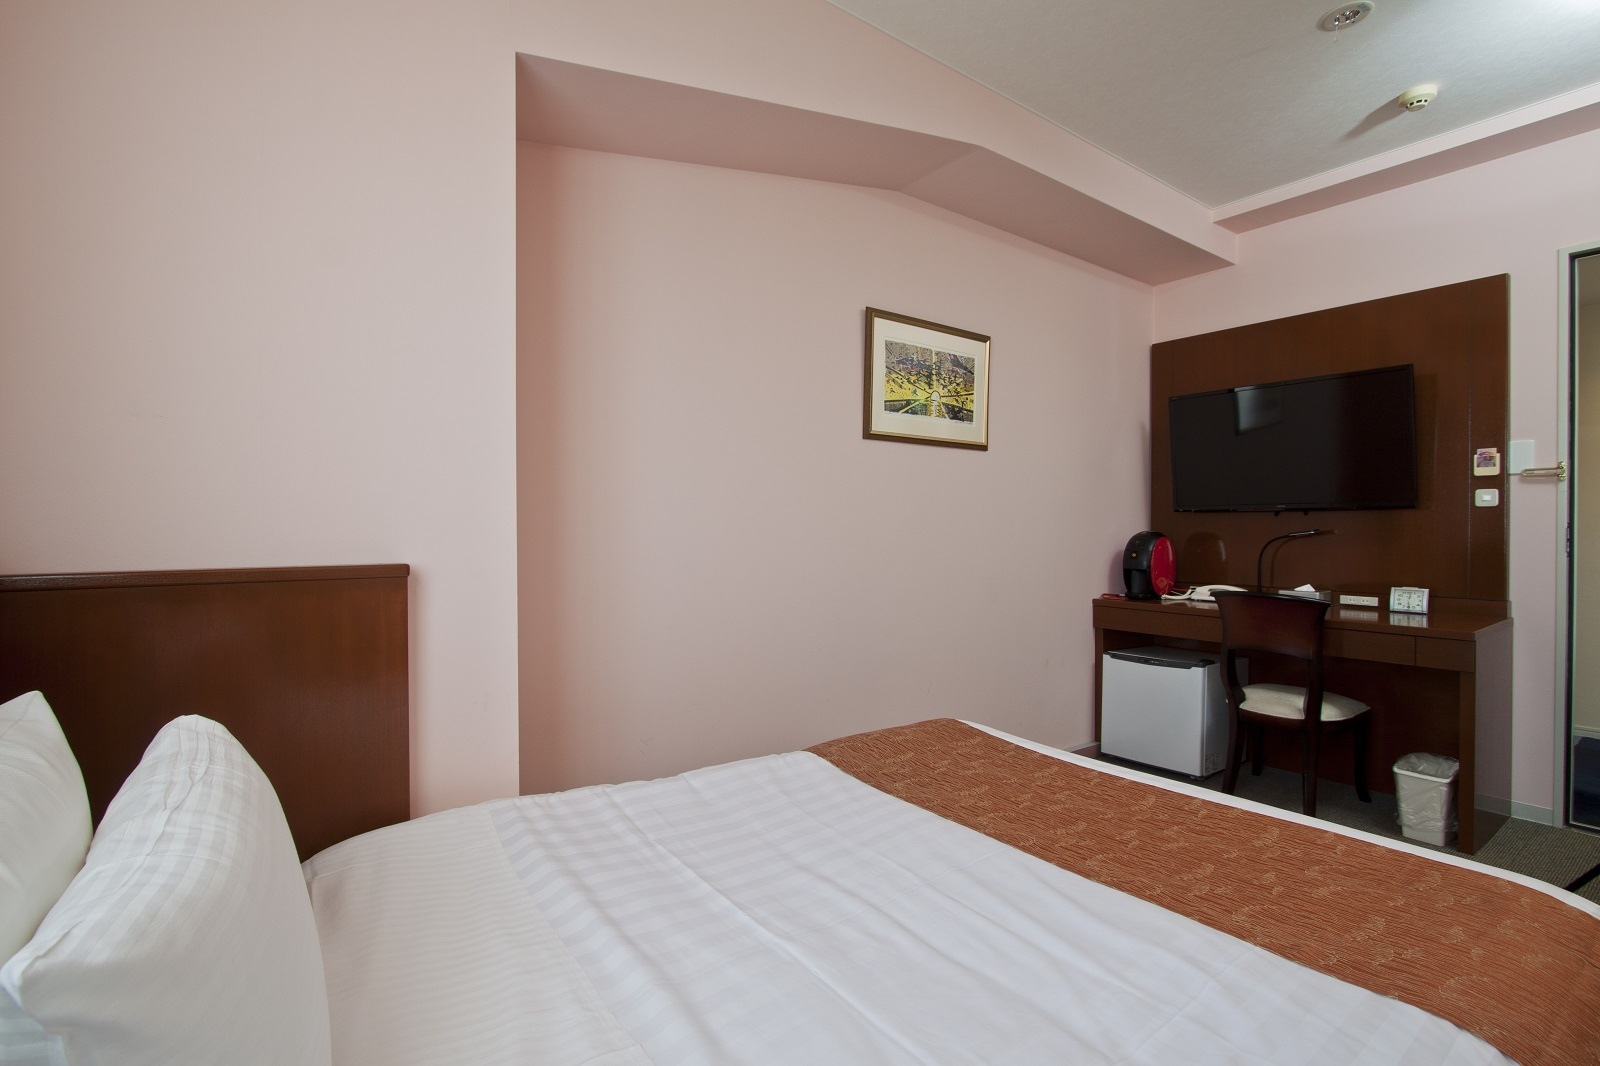 Semi-double room (all rooms non-smoking), 130 cm width bed